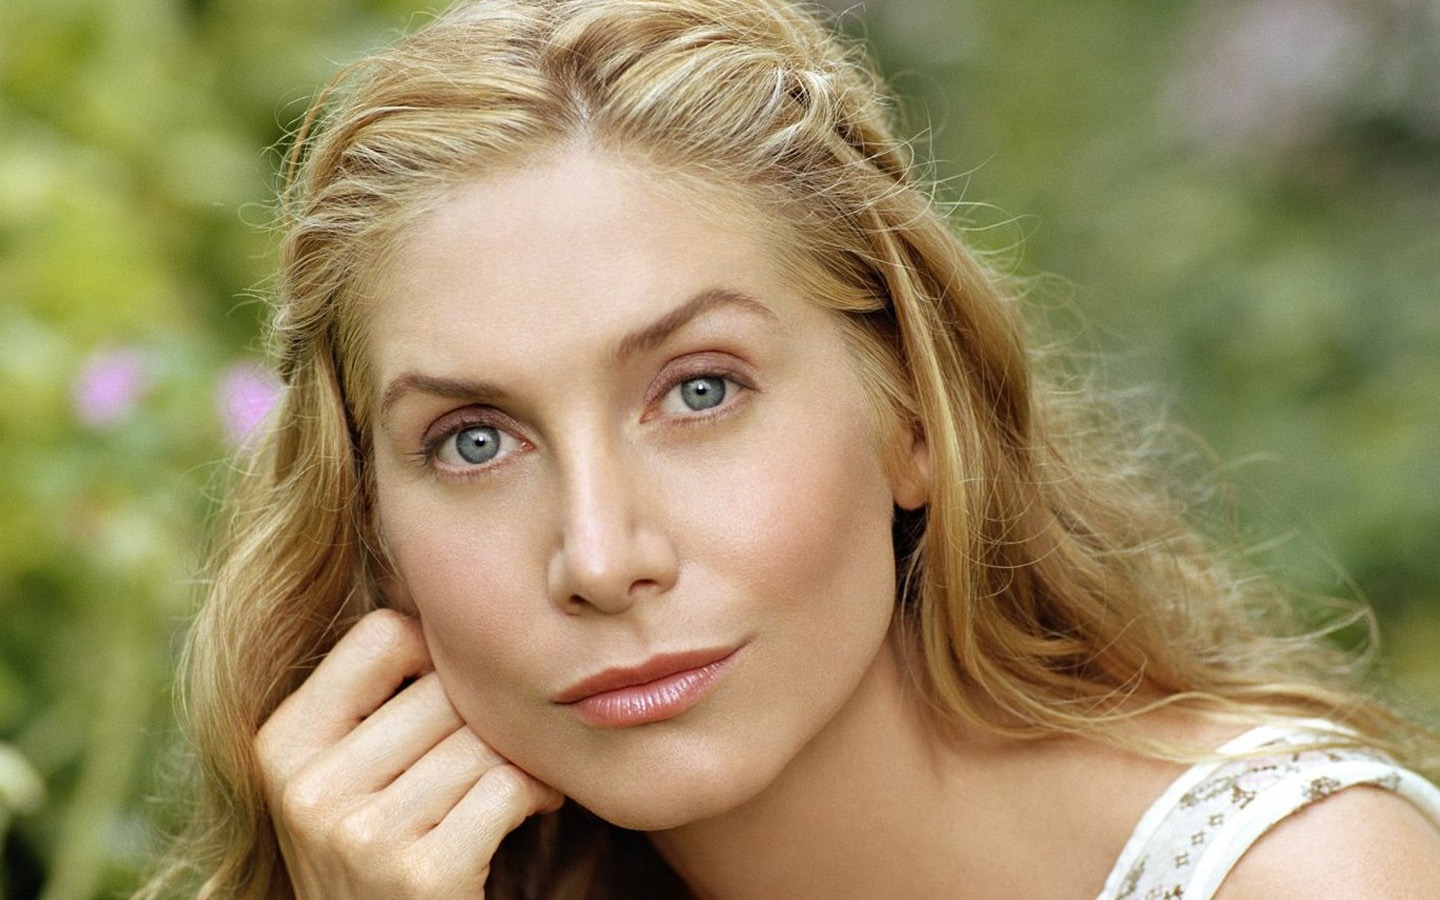 Elizabeth Mitchell #014 - 1440x900 Wallpapers Pictures Photos Images